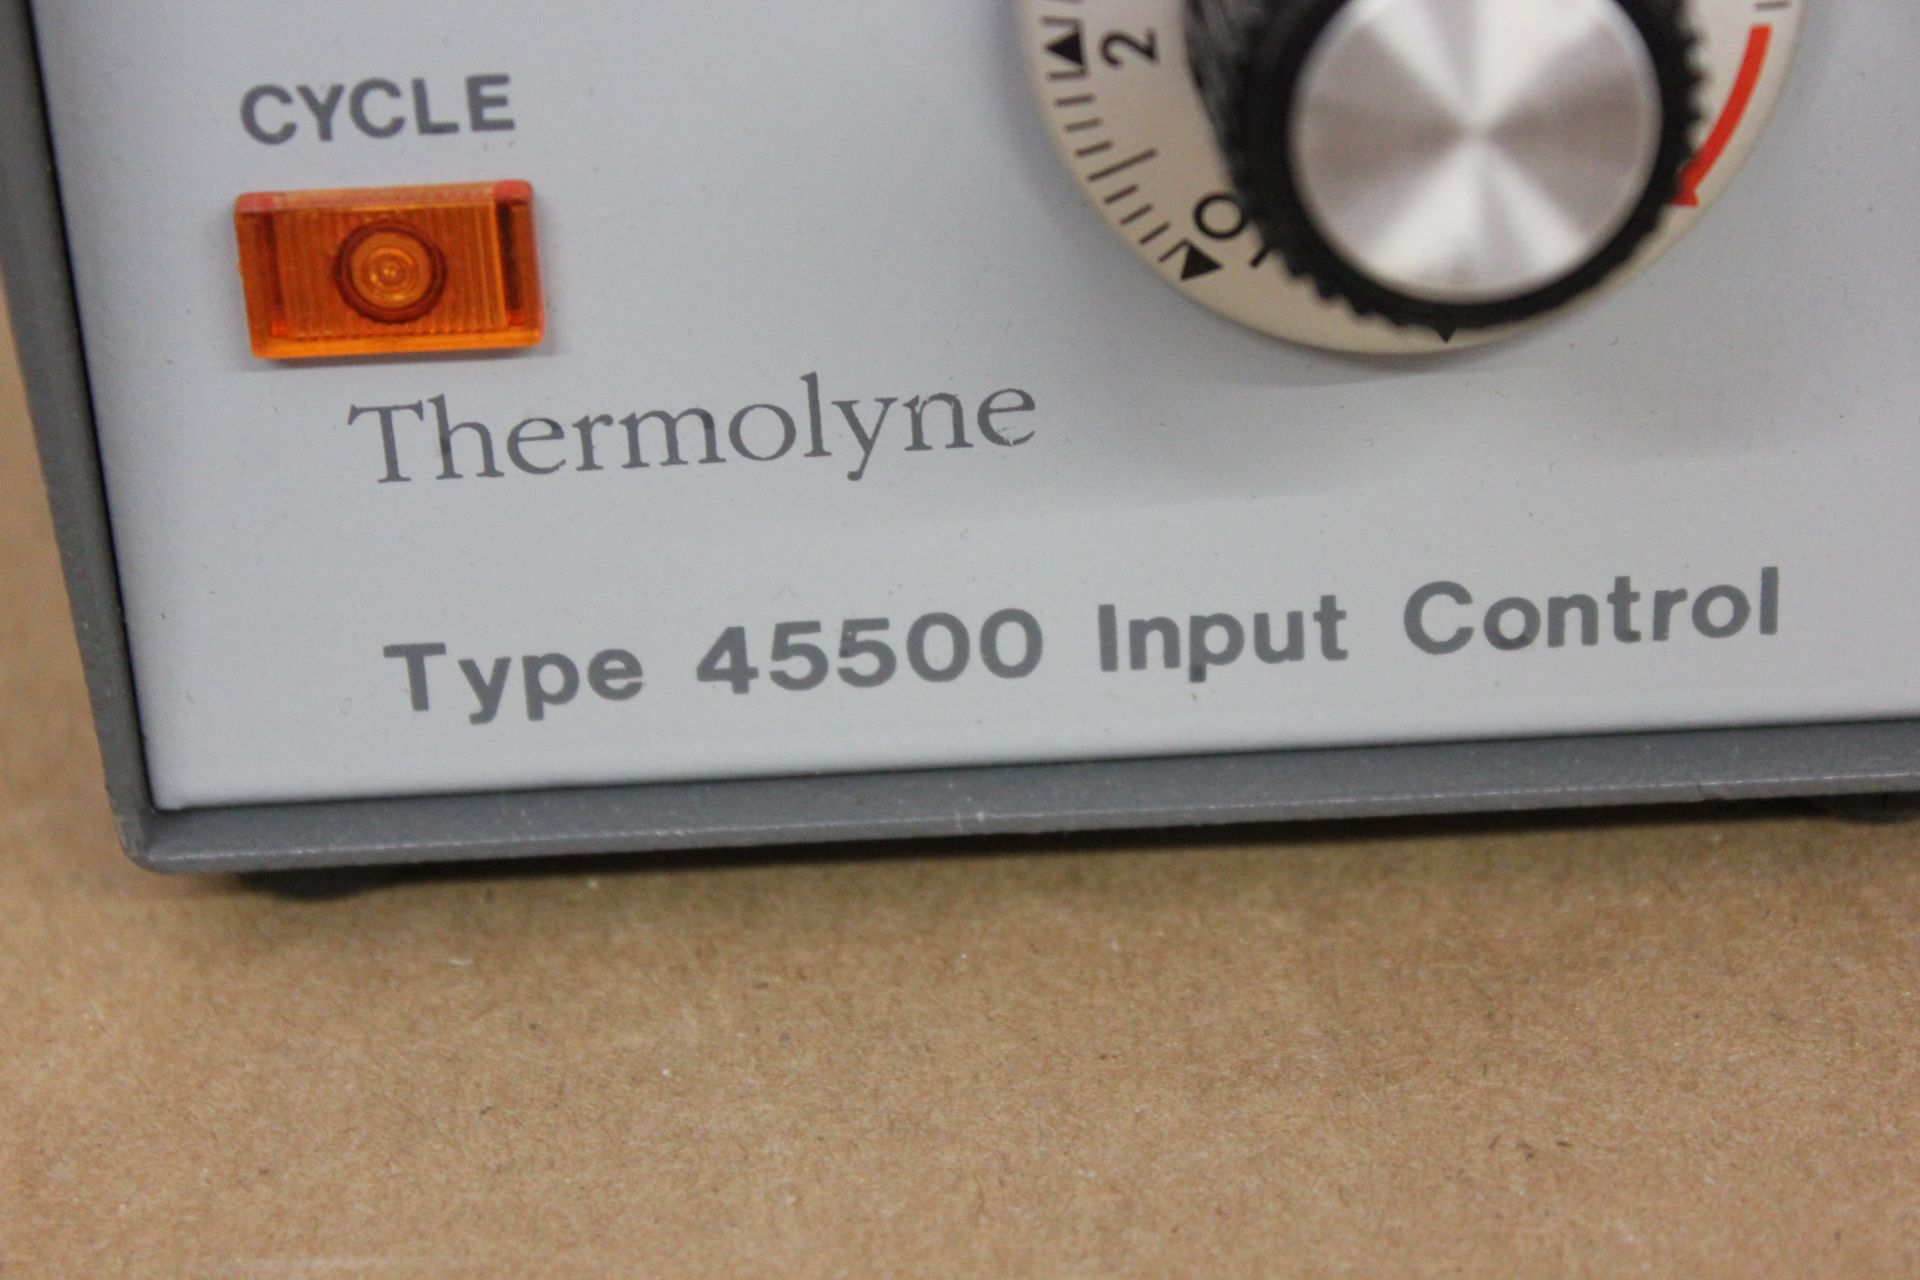 LOT OF 2 THERMOLYNE 45500 INPUT CONTROLLERS - Image 2 of 3